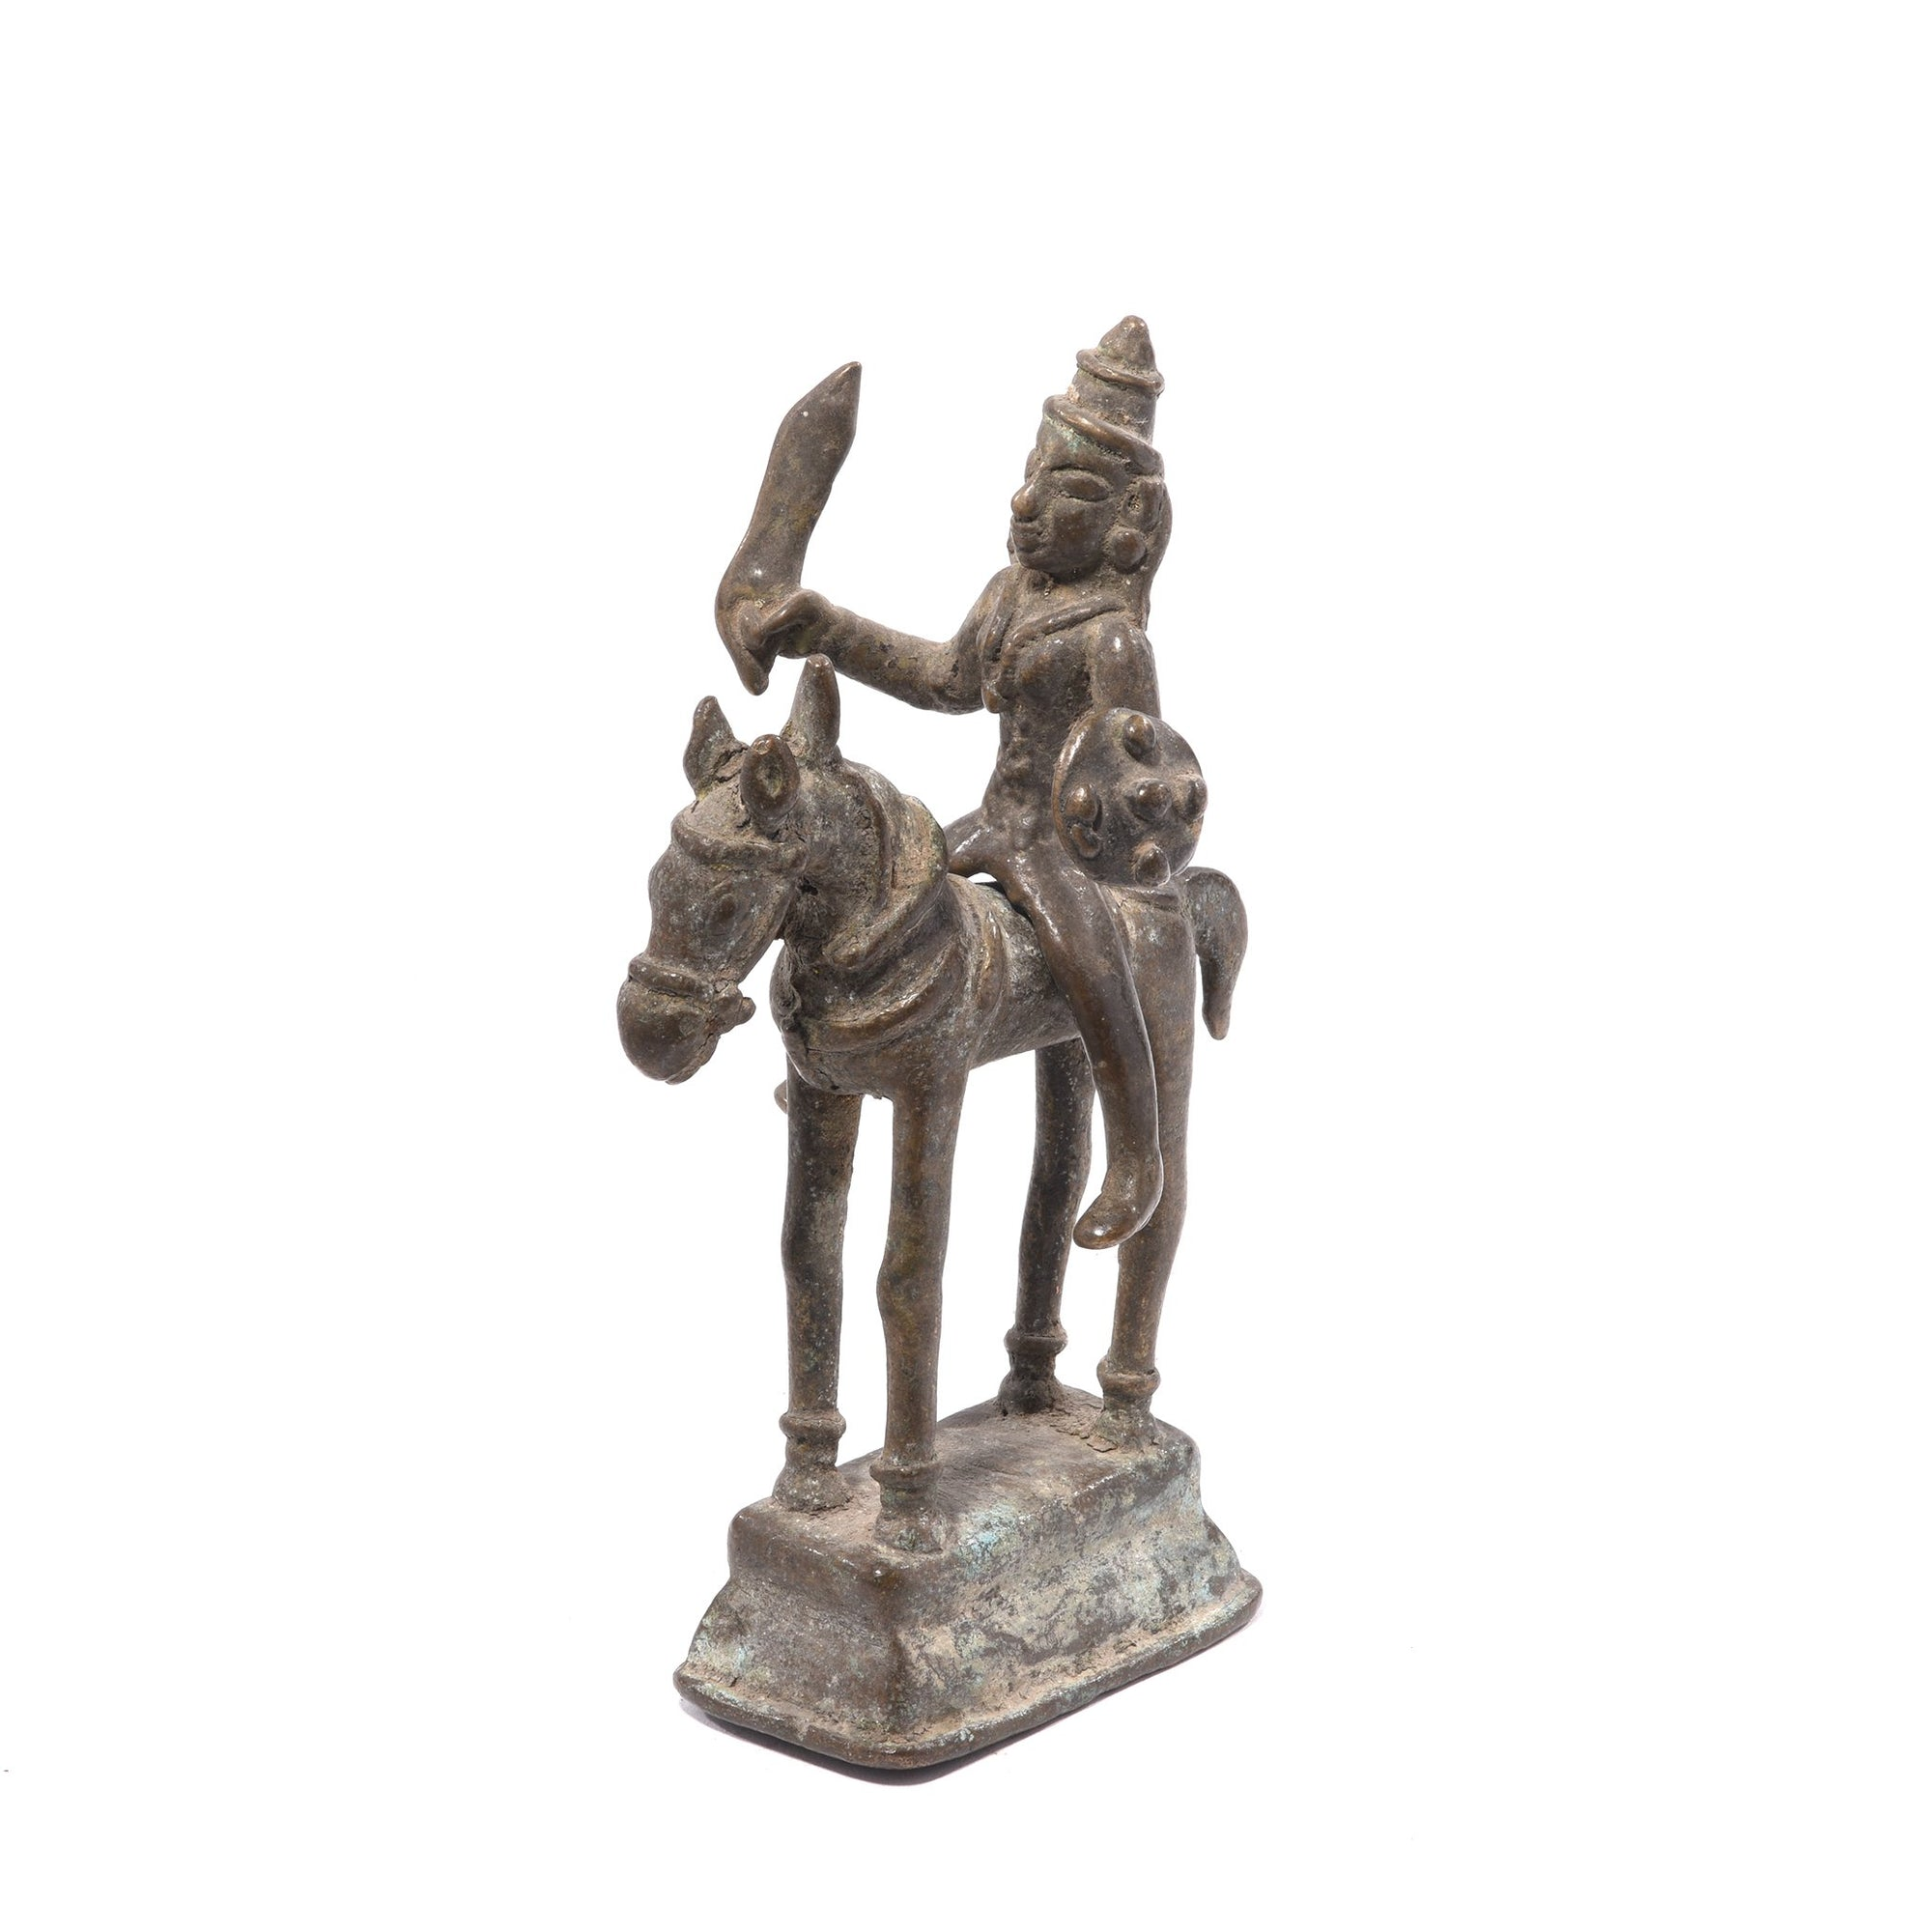 Brass Indian Horse & Rider Figurine from Andhra Pradesh - 19thC | Indigo Oriental Antiques